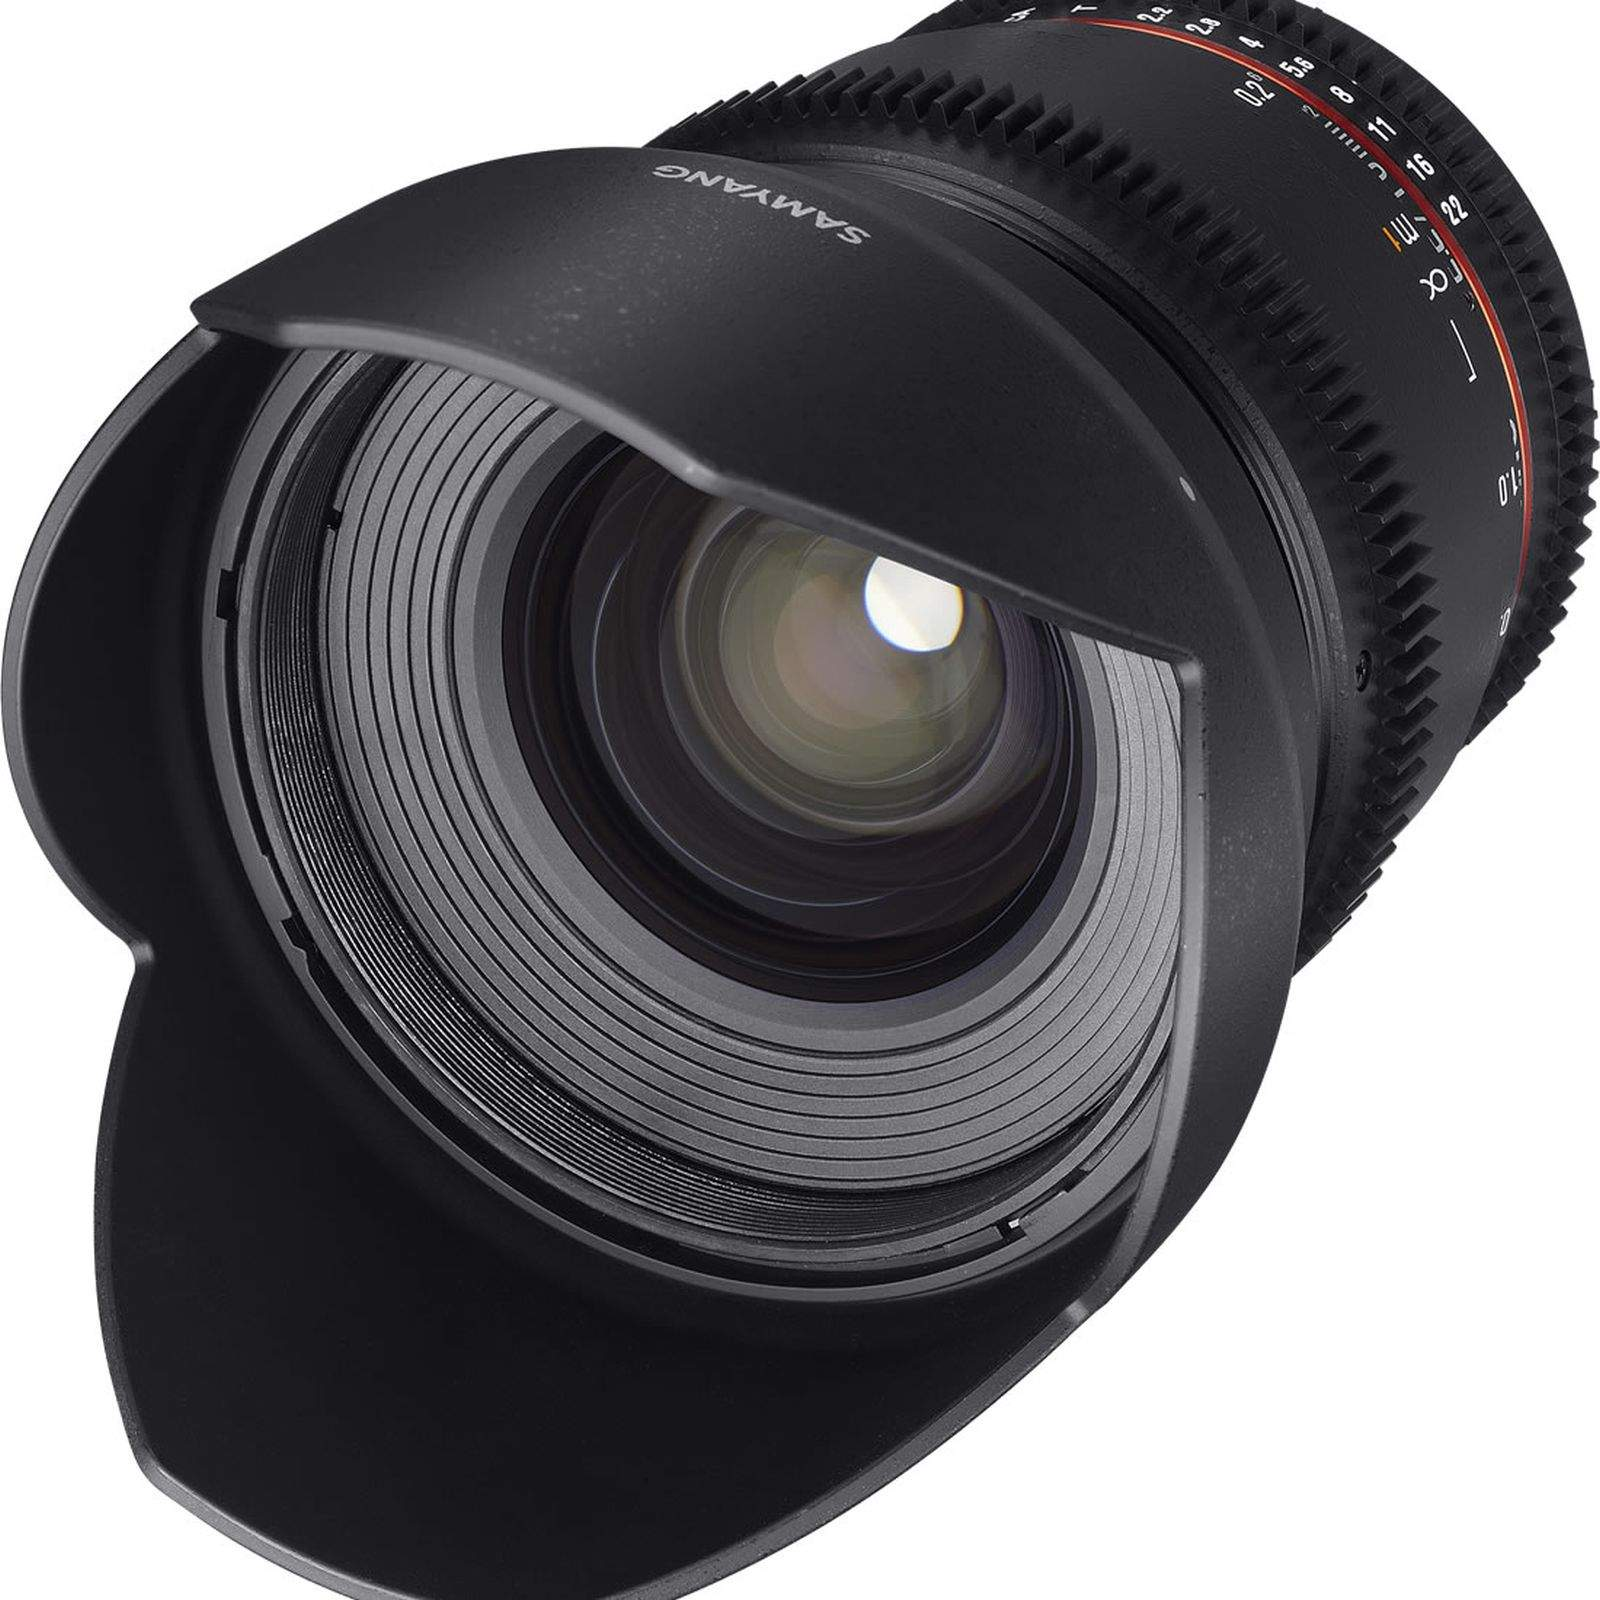 16mm T2.2 VDSLR UMC II APS-C Sony E